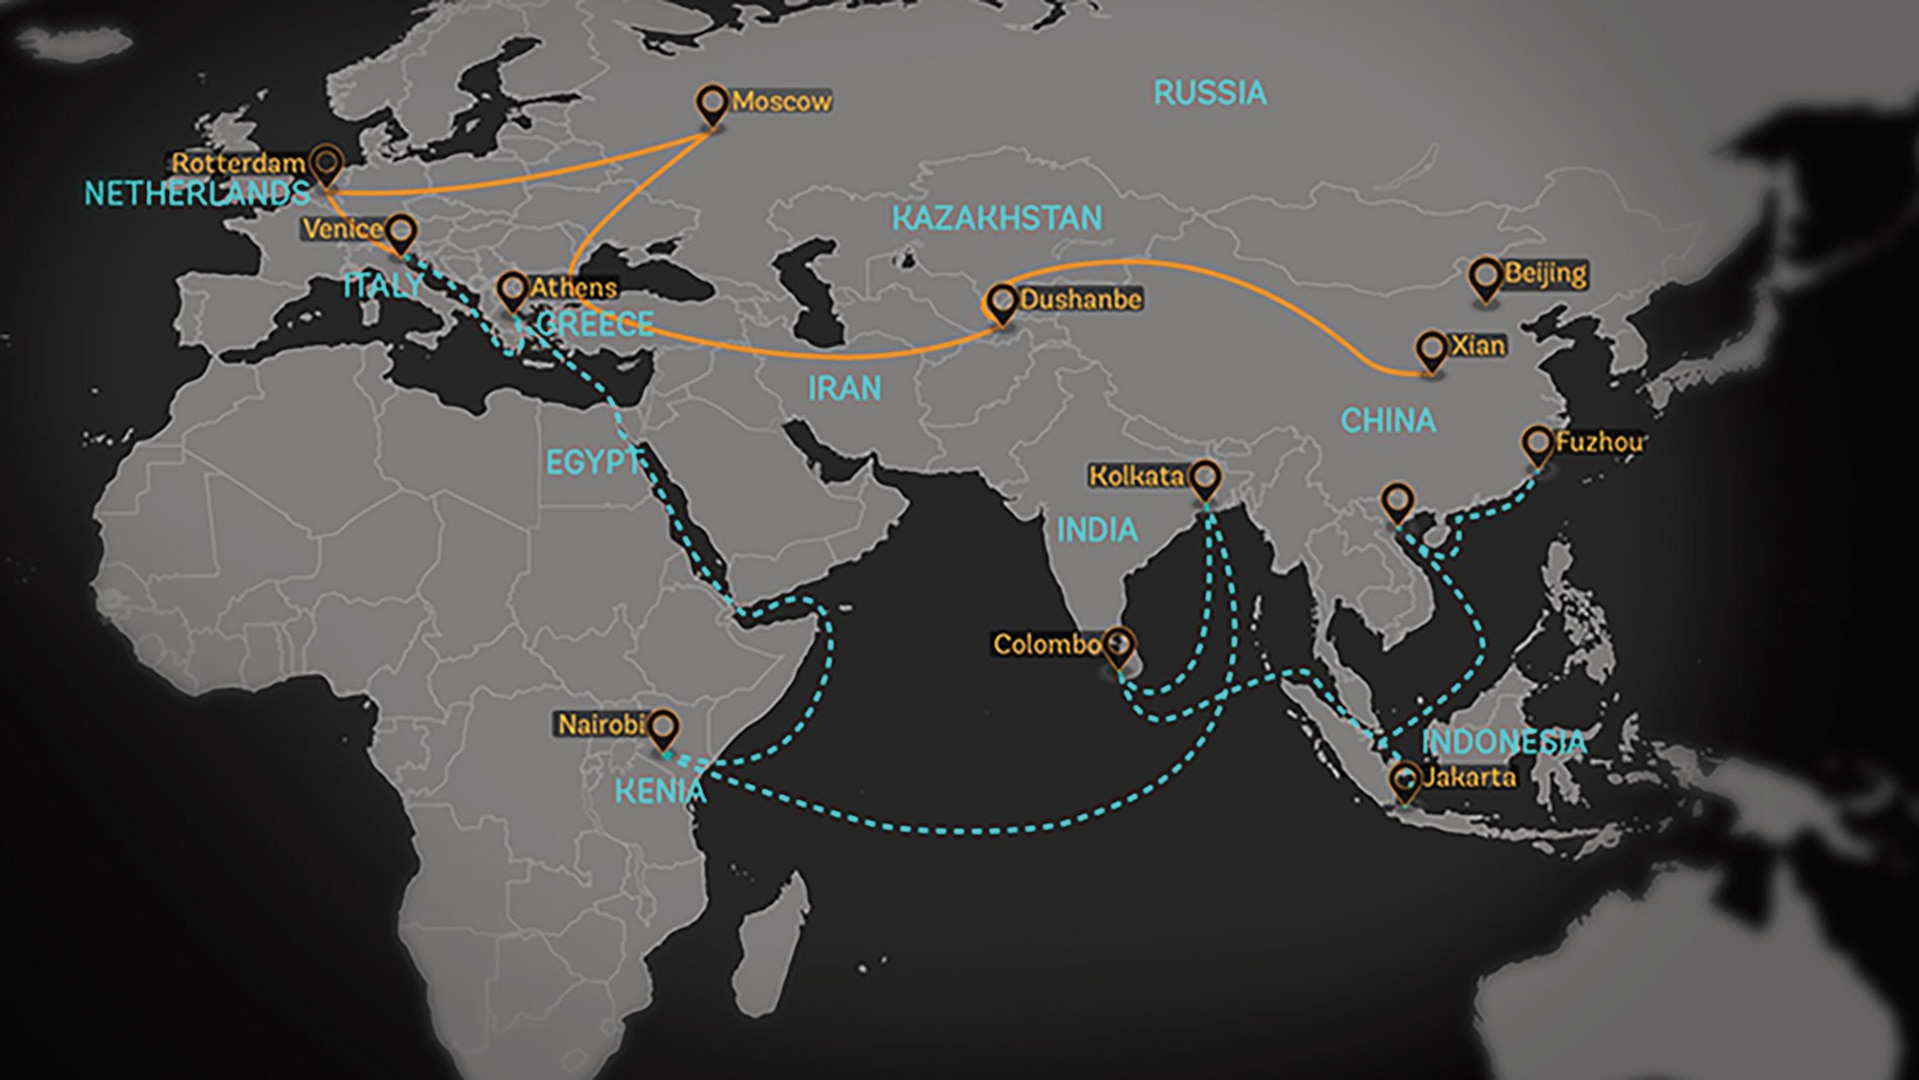 The Belt and Road Initiative includes 1/3 of world trade and GDP and over 60% of the world's population. (World Bank)